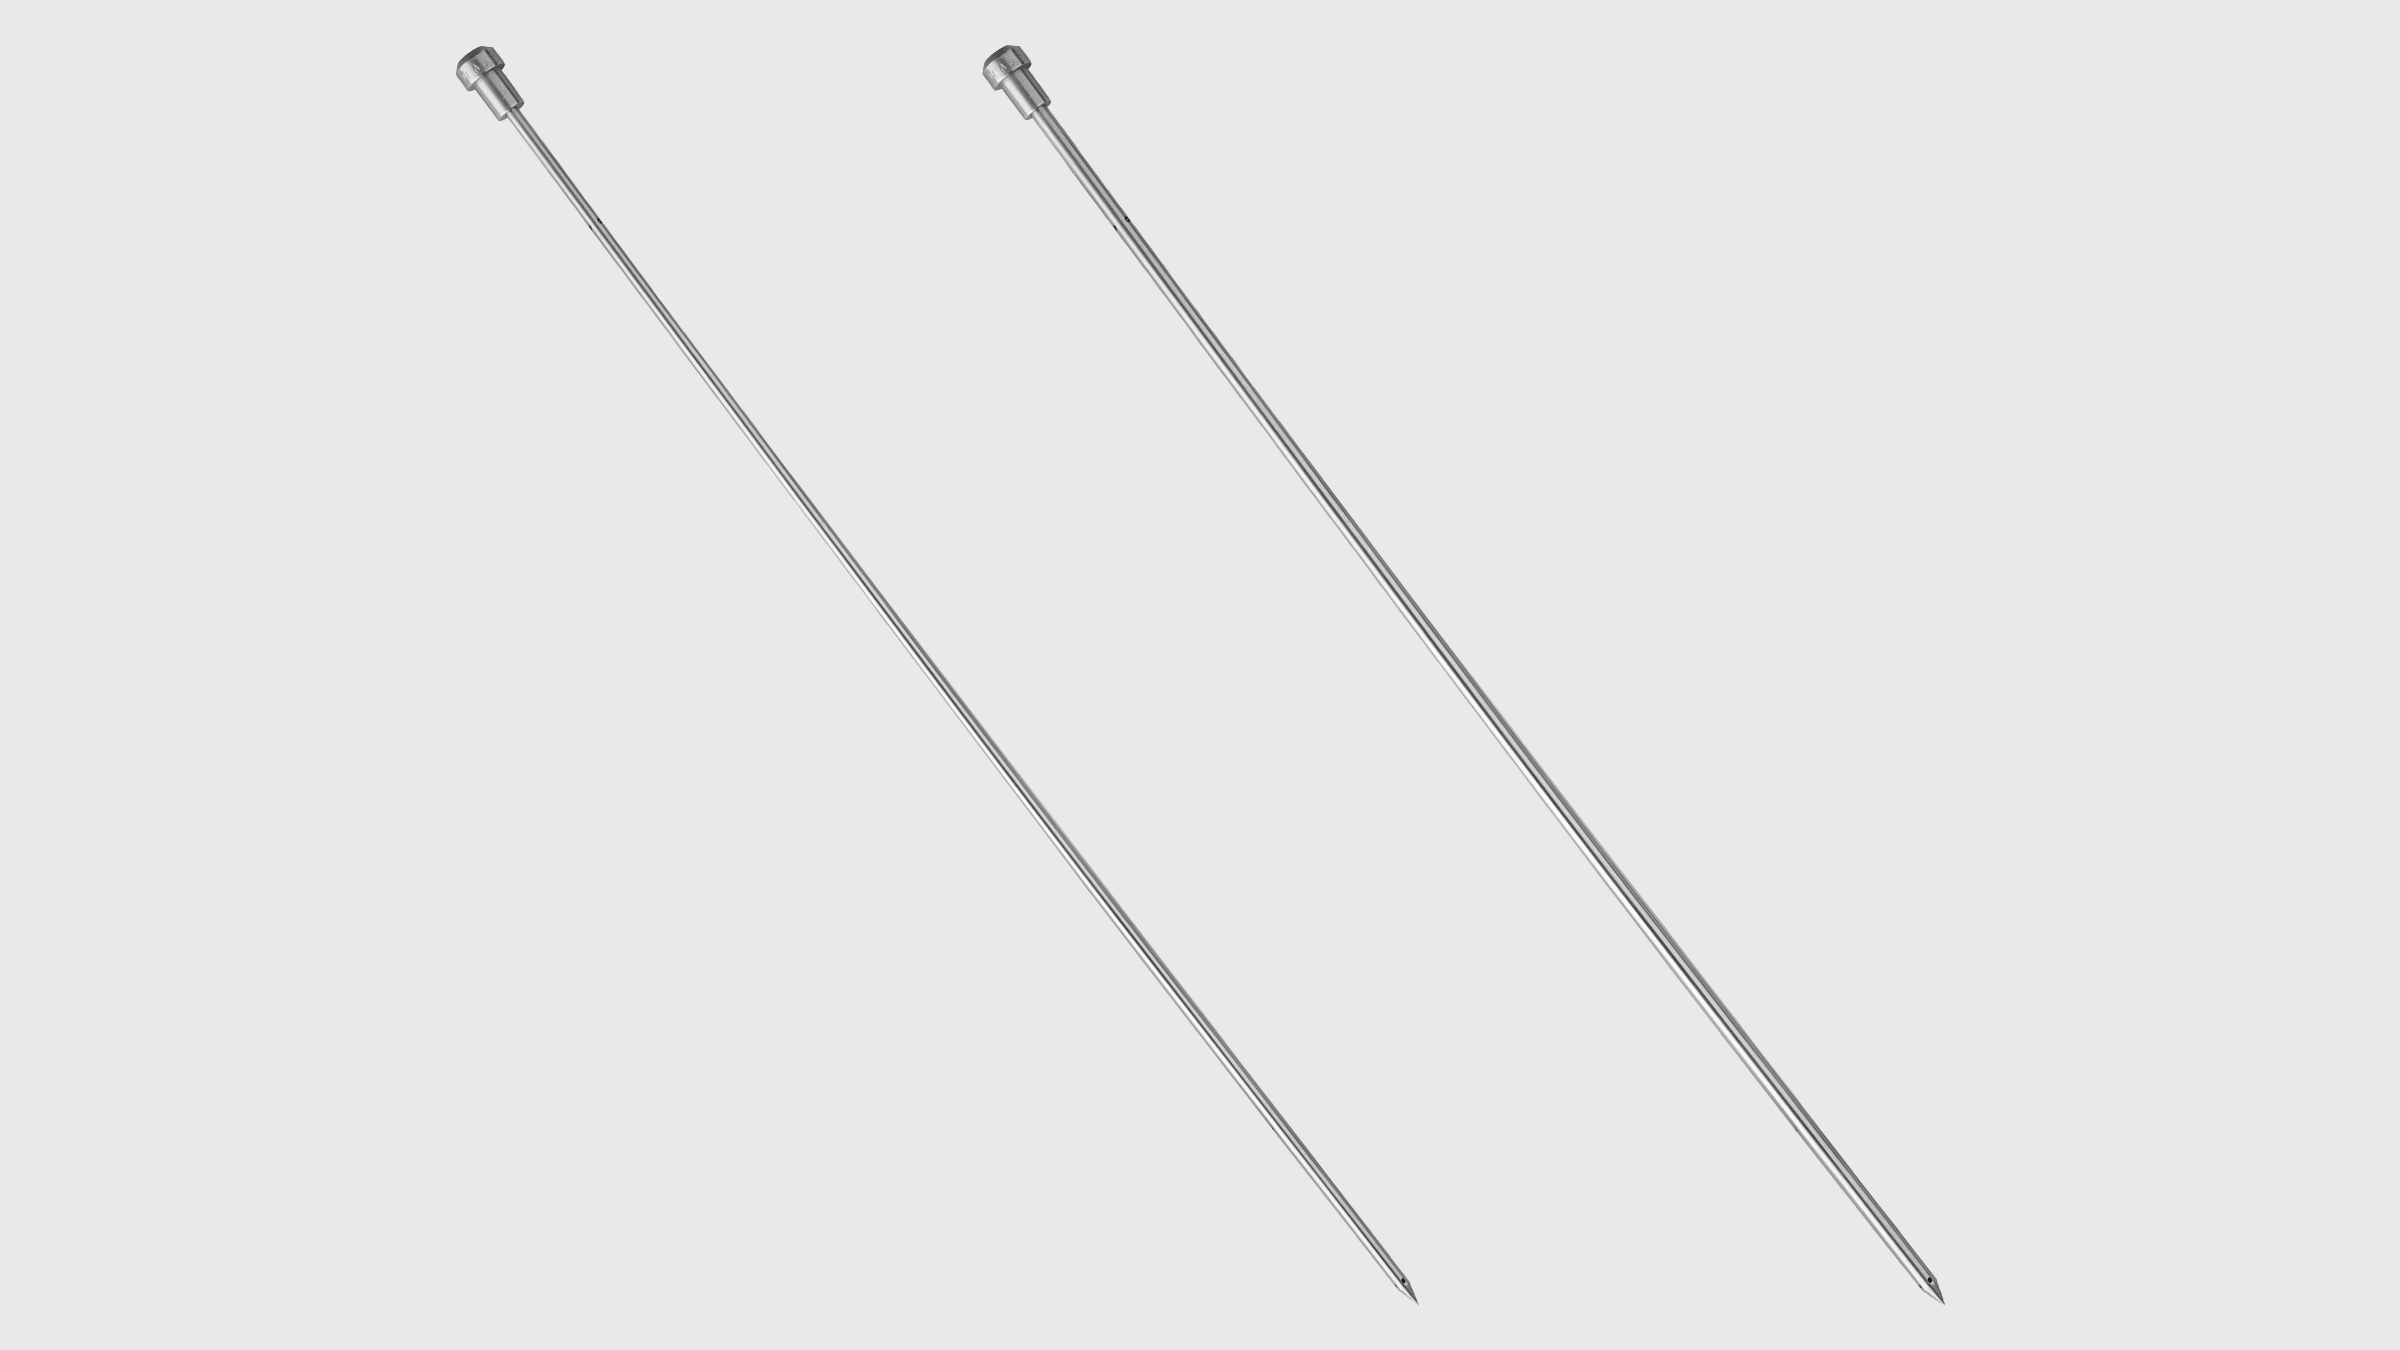 gea-multijector-3-4mm-detail-needles